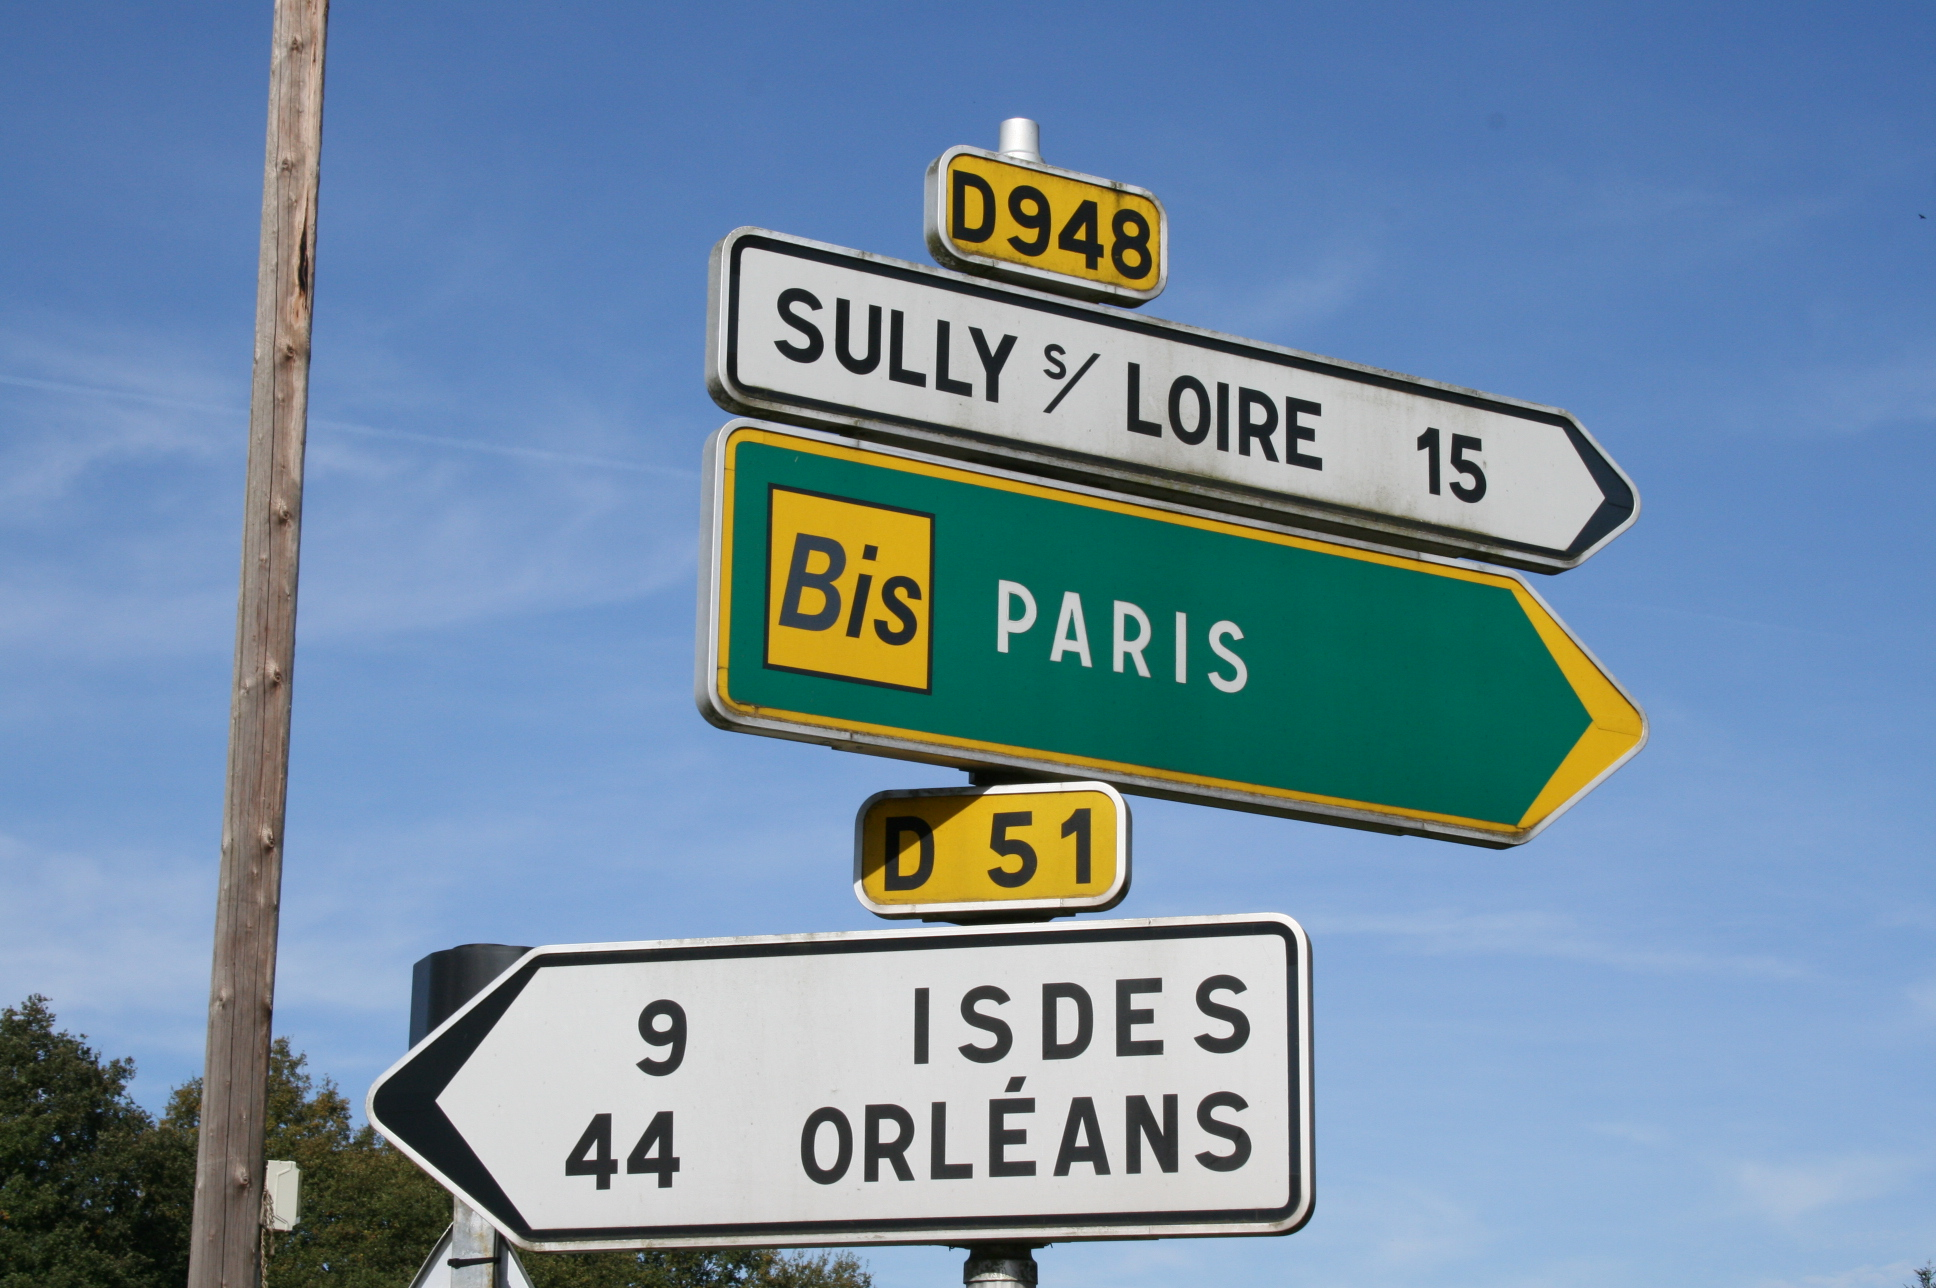 indication de distance sur un panneau de signalisation en france. Black Bedroom Furniture Sets. Home Design Ideas